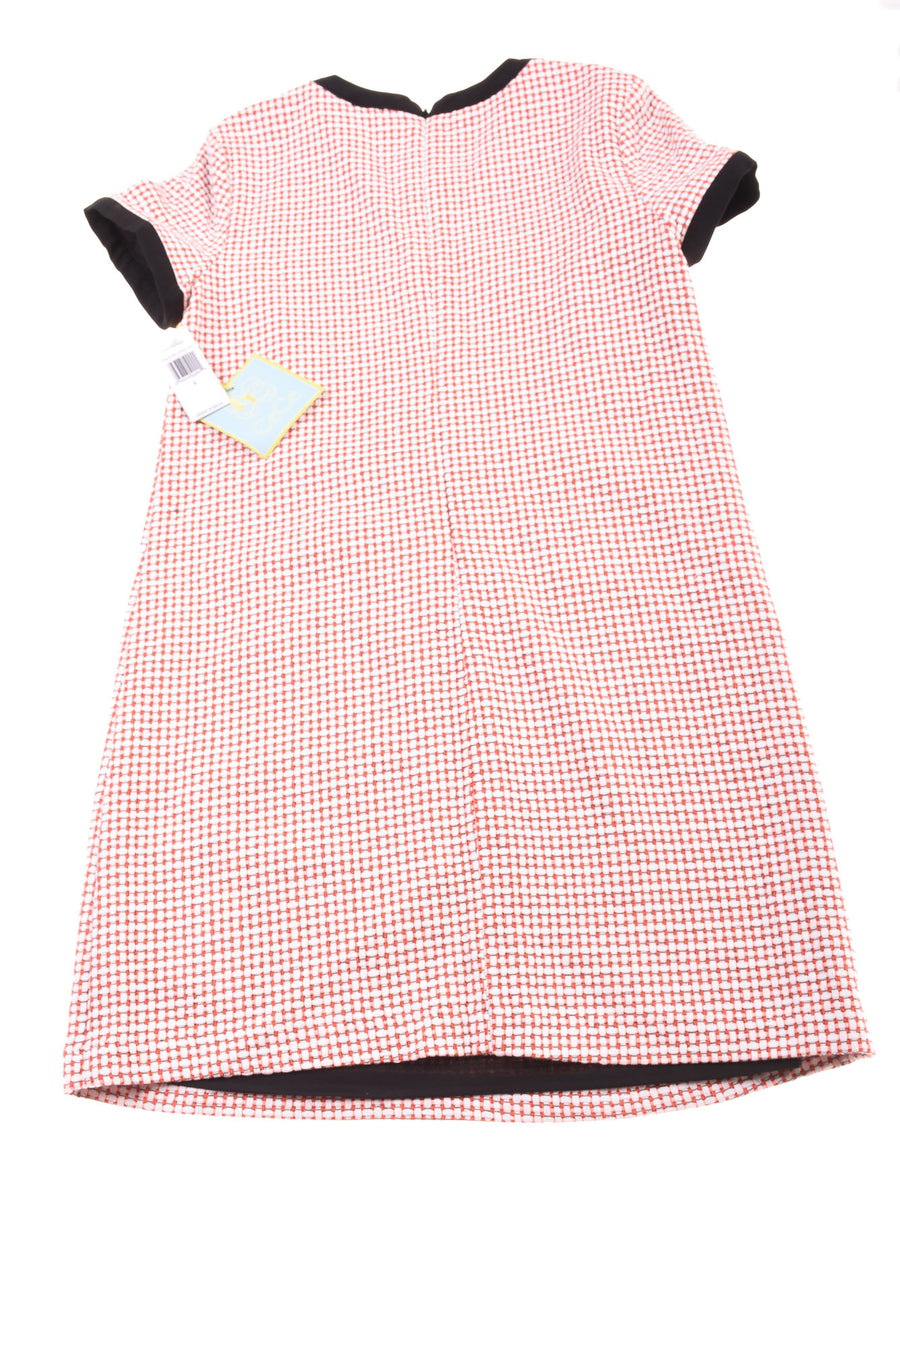 NEW Cece's Women's Dress 4 Coral Pop